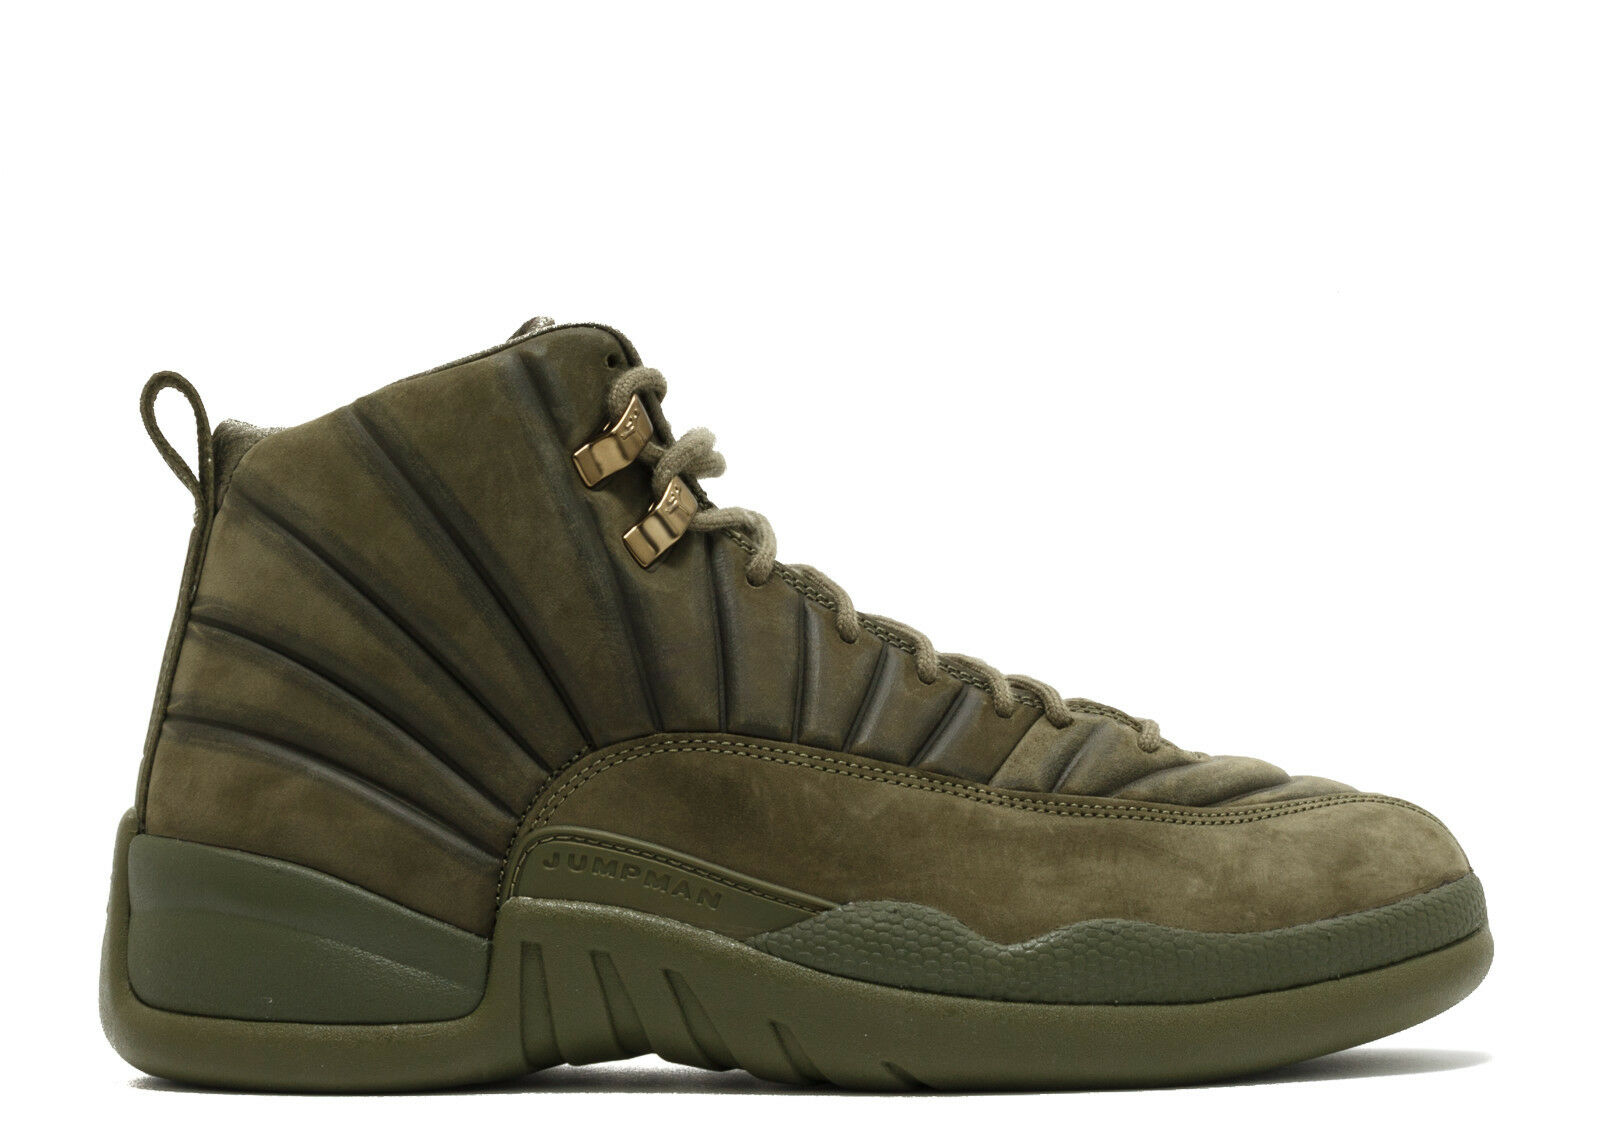 Nike Air Jordan 12 Retro PSNY Milan Olive Comfortable The most popular shoes for men and women